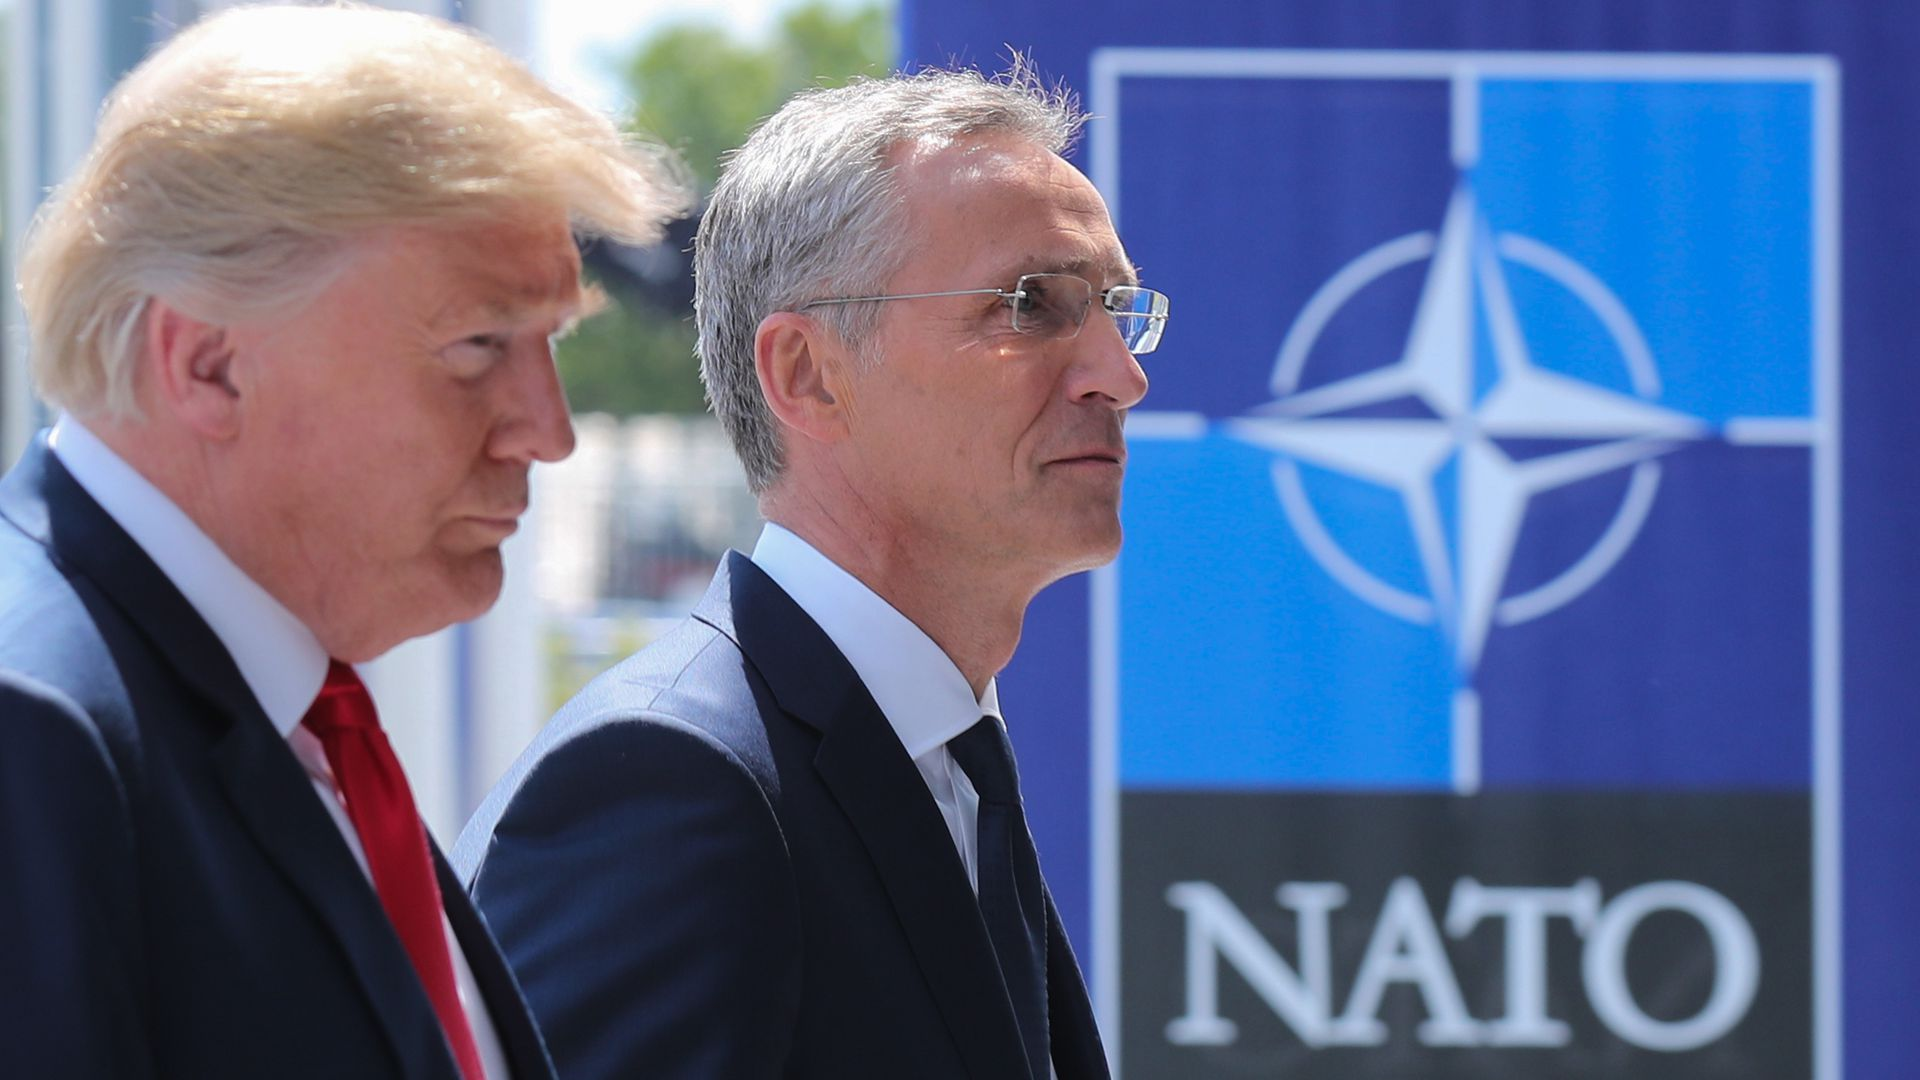 Trump and Stoltenberg side by side